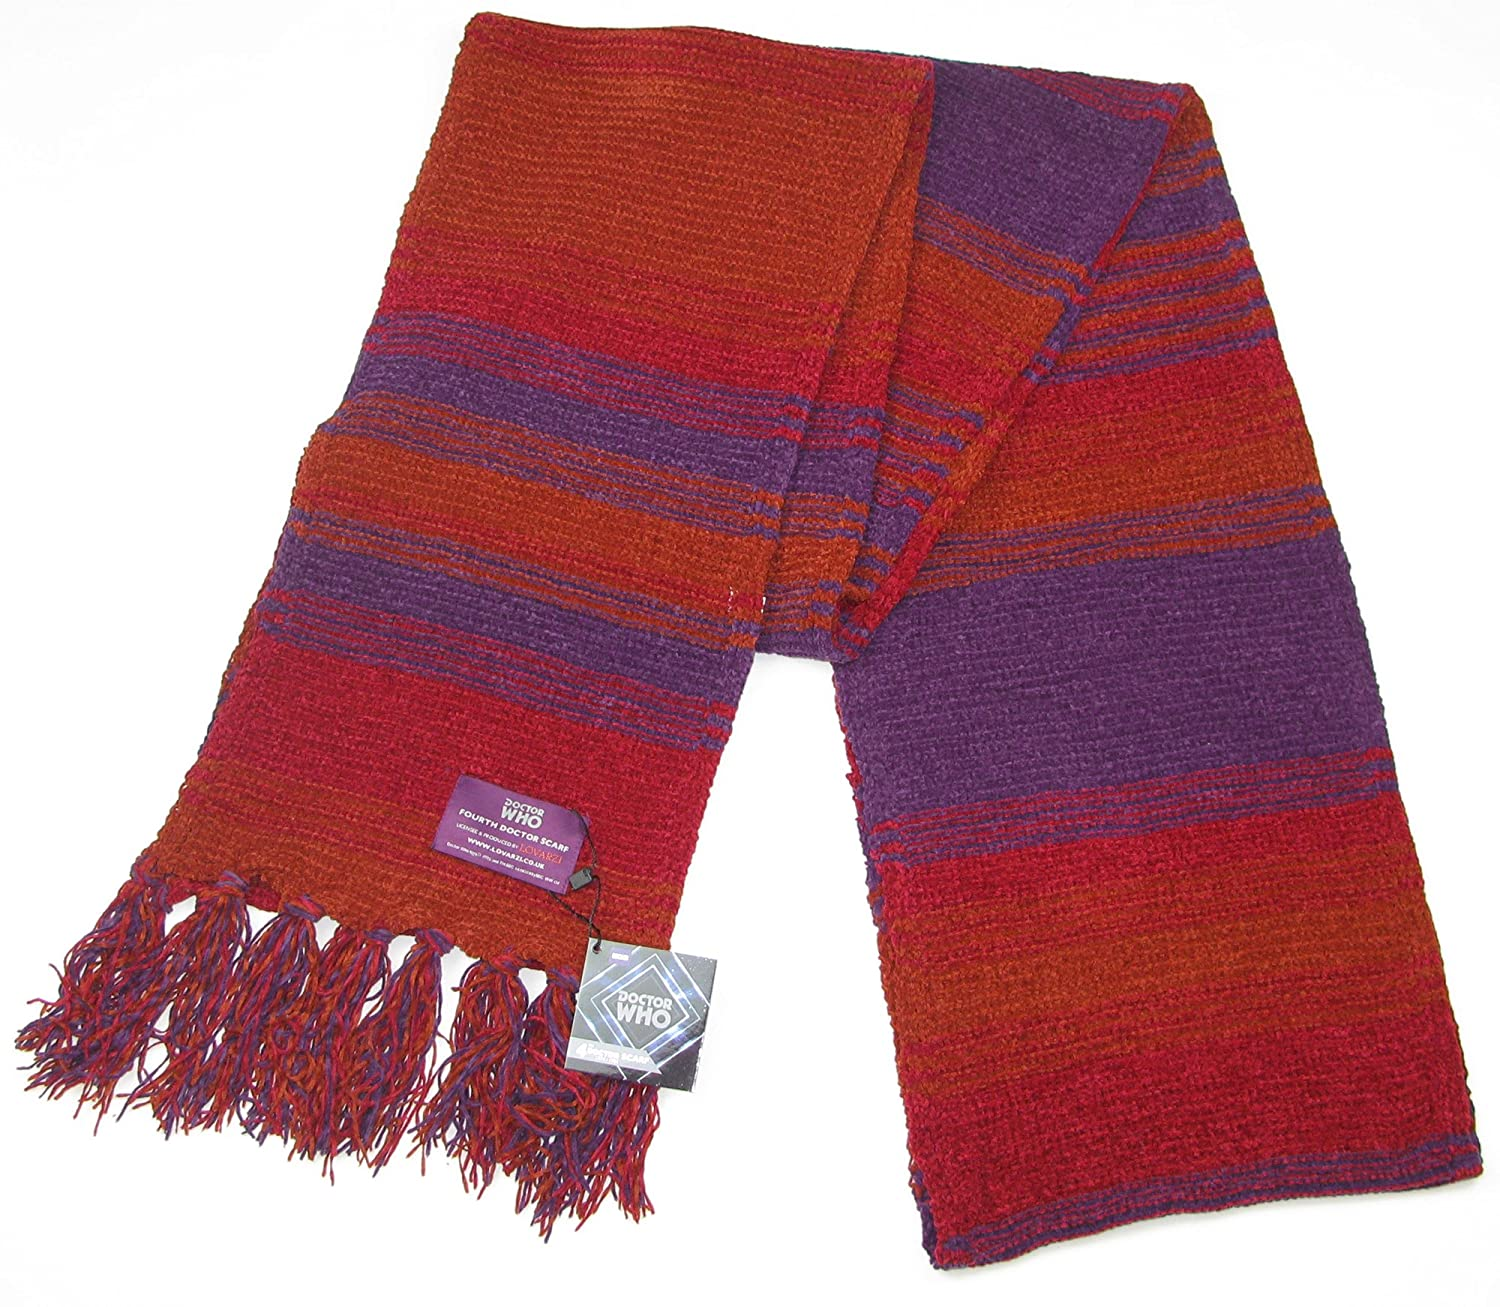 Doctor Who Scarf - Official BBC Doctor Who Season 18 Chenille Scarf - 4th Doctor Burgundy 12 feet long scarf by Lovarzi